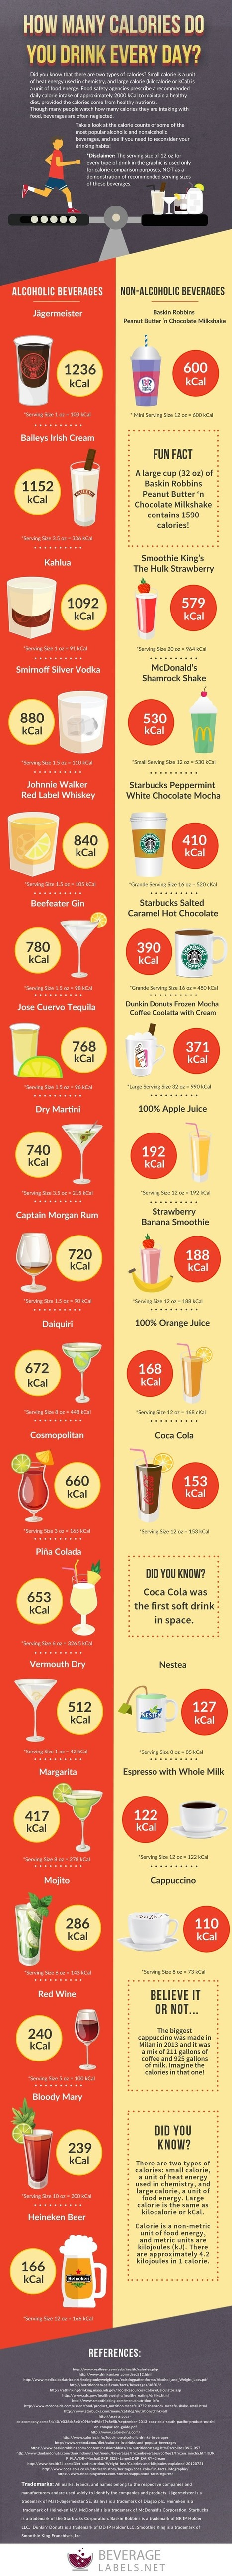 Case Study: How many Calories you drink in a day? | All Infographics | Scoop.it